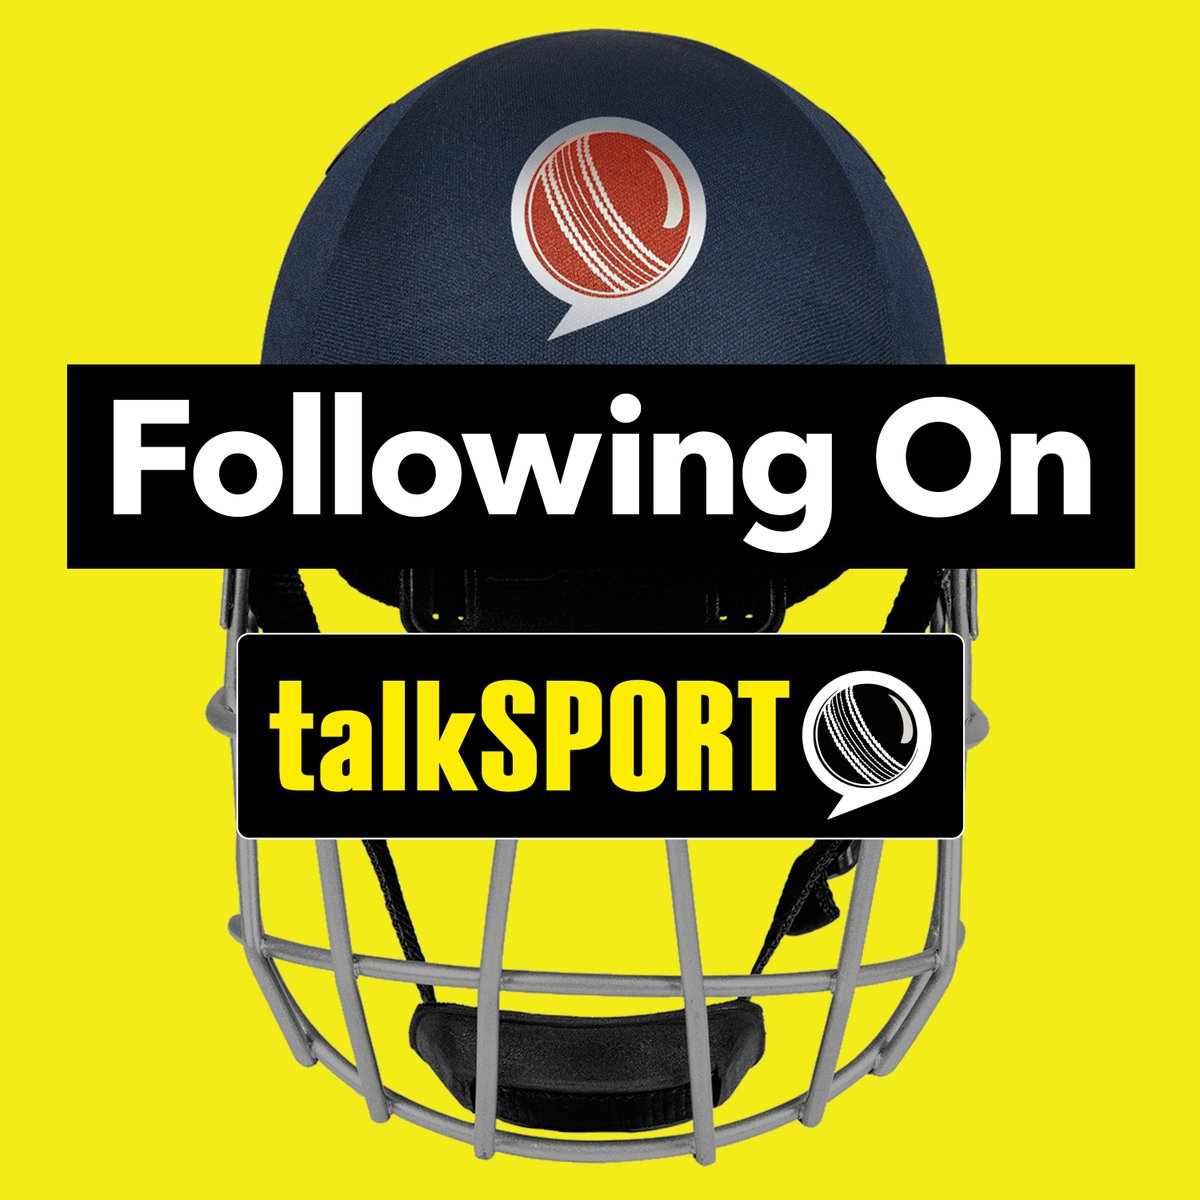 🚨 𝗡𝗘𝗪 𝗣𝗢𝗗𝗖𝗔𝗦𝗧 🚨  🎙️ @ScottTaylorUK hosts a busy Following On:  🏏 Hear from @Eoin16 & Quinton de Kock 🏏 @Athersmike joins @talkSPORTDrive 🏏 @7polly7 joins us ➕ More!  Every ball of today's 1st T20 is live on @talkSPORT2 👏  📻 Listen → https://t.co/AuWXn0DxBH https://t.co/GPtvvWW39k